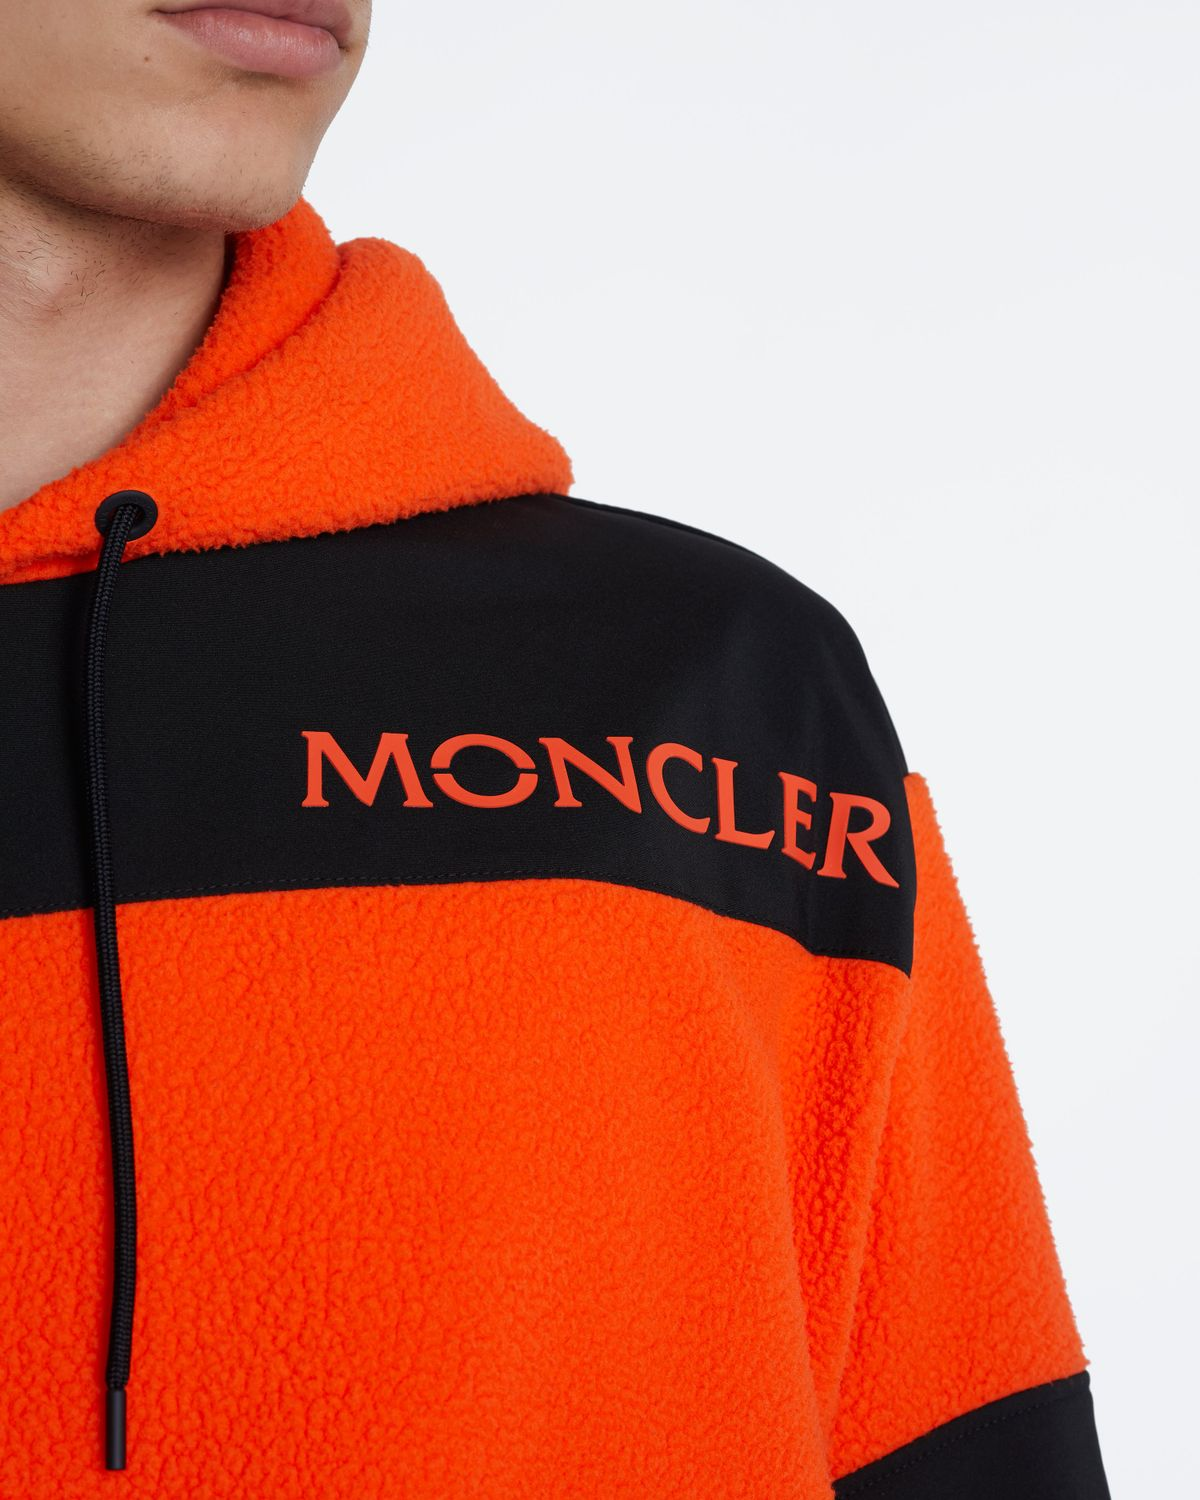 Moncler — Grenoble Recycled Jumper - Image 5